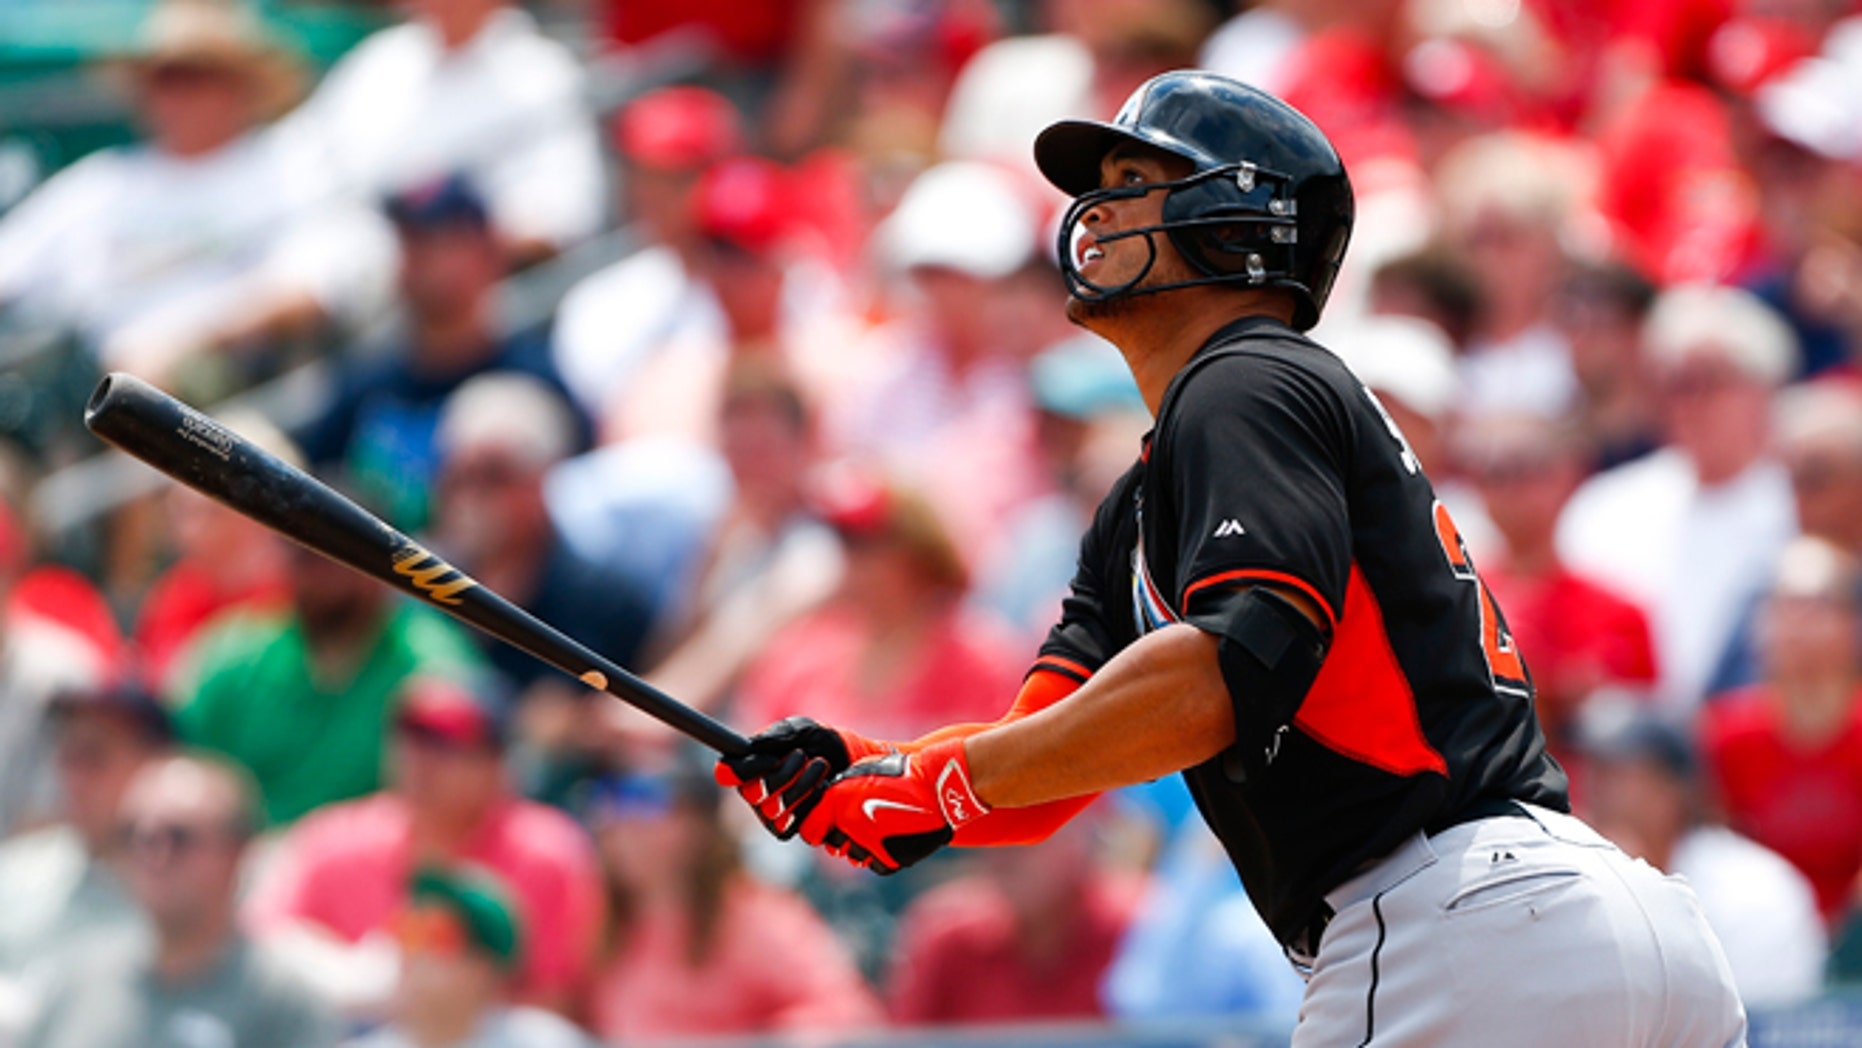 March 26: Miami Marlins' Giancarlo Stanton follows through with a home run in the first inning of an exhibition spring training baseball game against the St. Louis Cardinals.